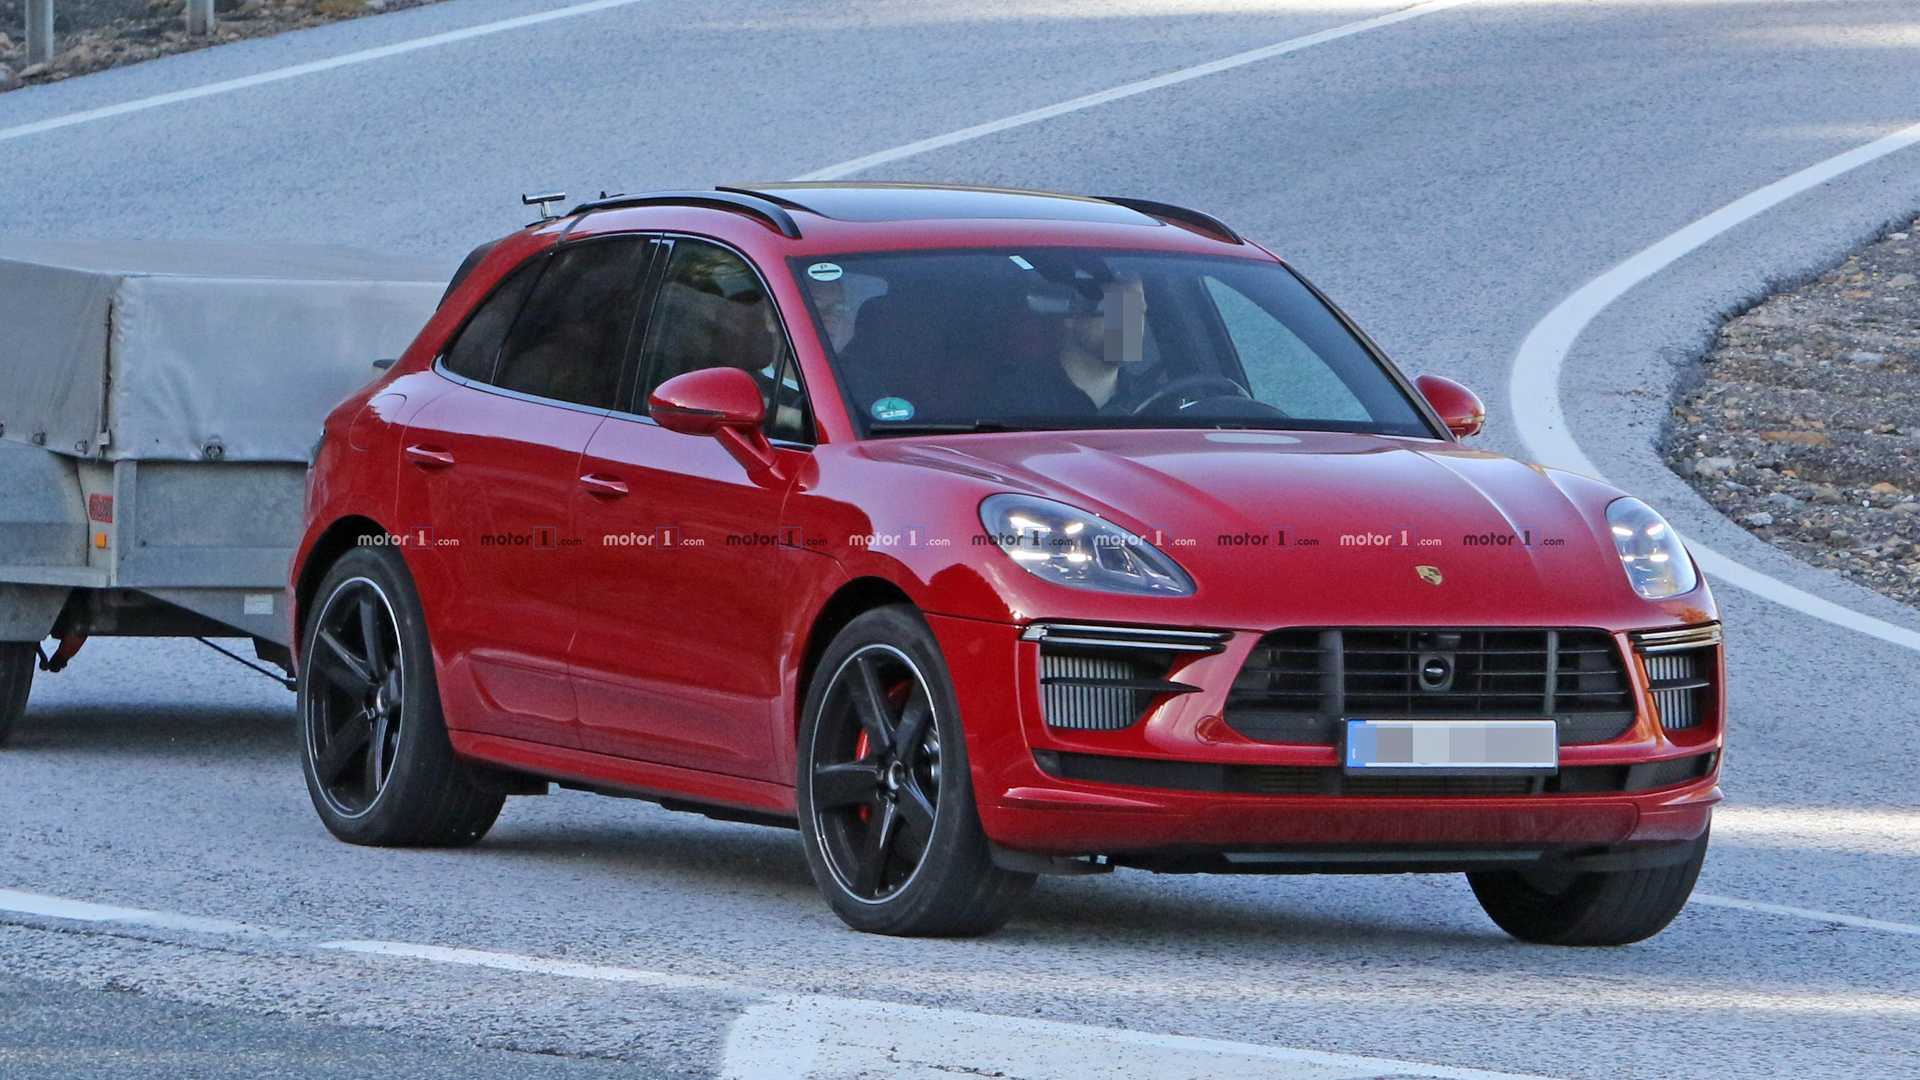 2020 Porsche Macan: News, Turbo, GTS, Release >> Porsche Macan Turbo Spied Doing A Little Towing Before Its Launch